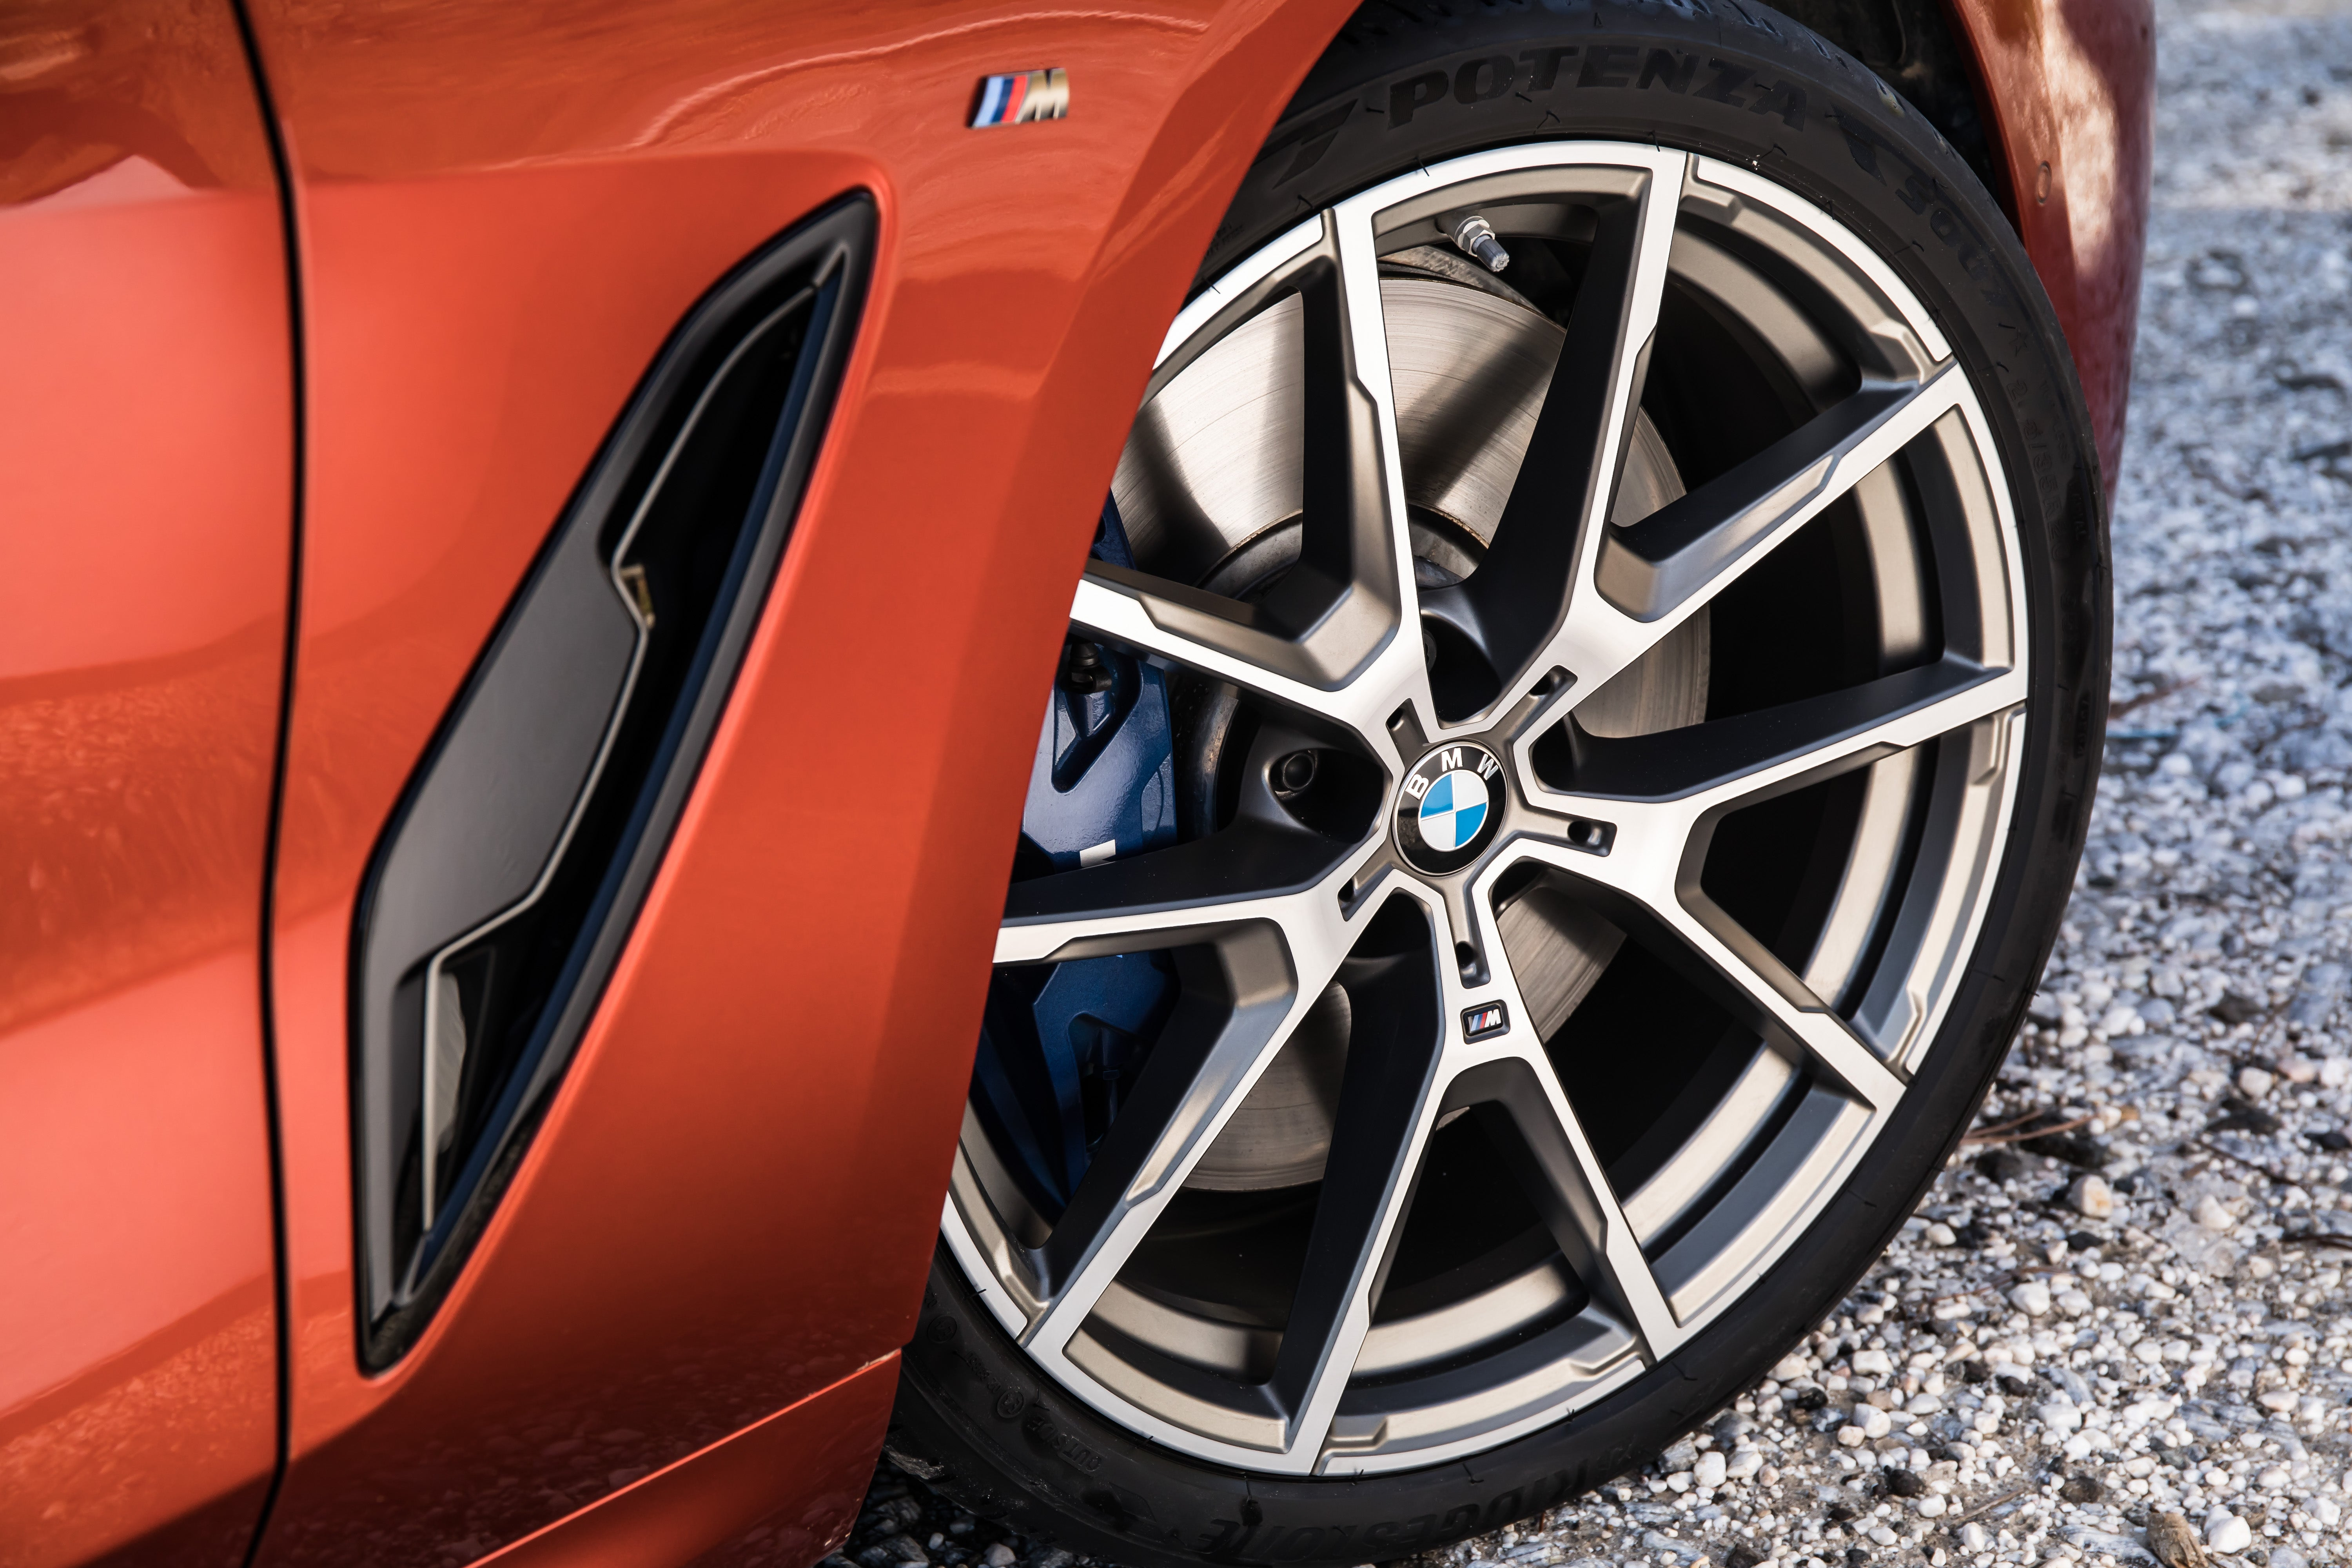 BMW 8 Series Wheel